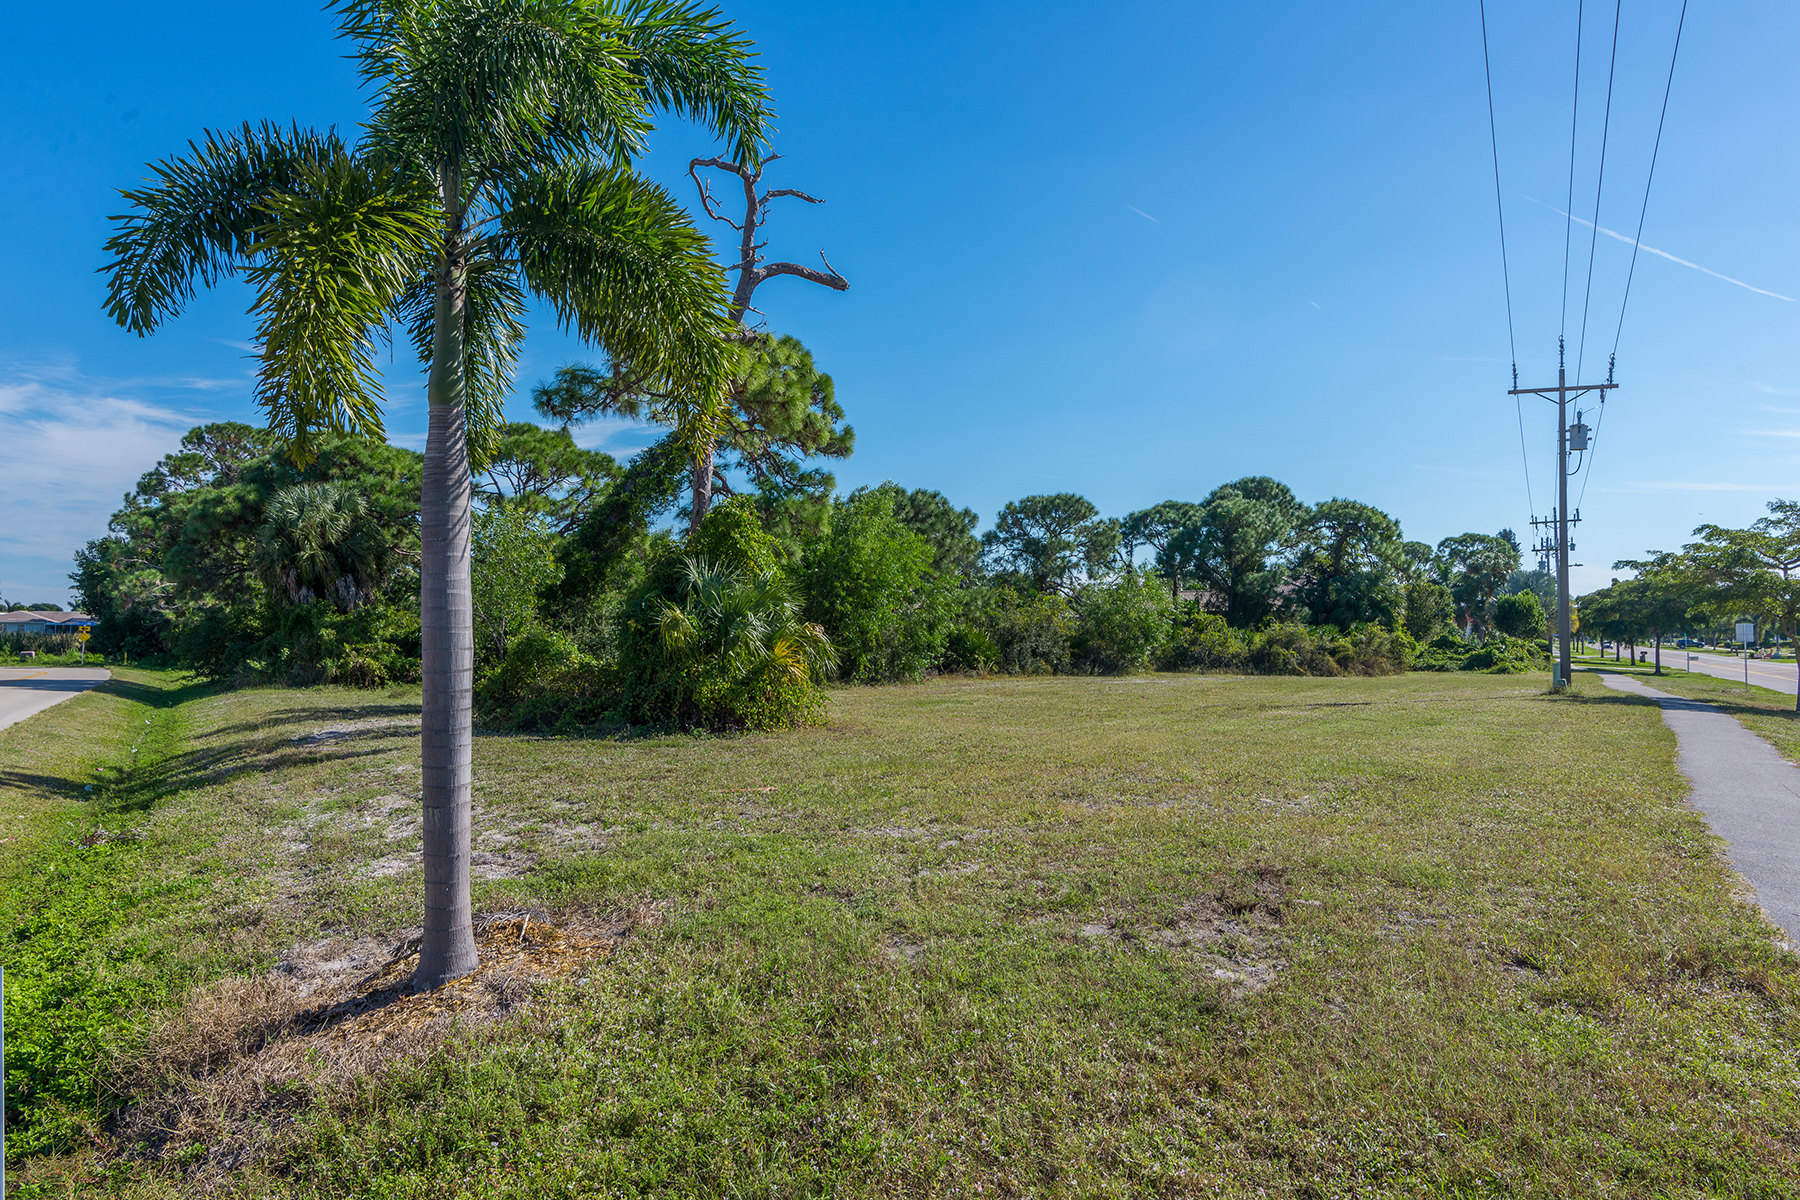 Land for Sale at MARCO ISLAND - BALD EAGLE DR 387 Bald Eagle Dr Marco Island, Florida 34145 United States